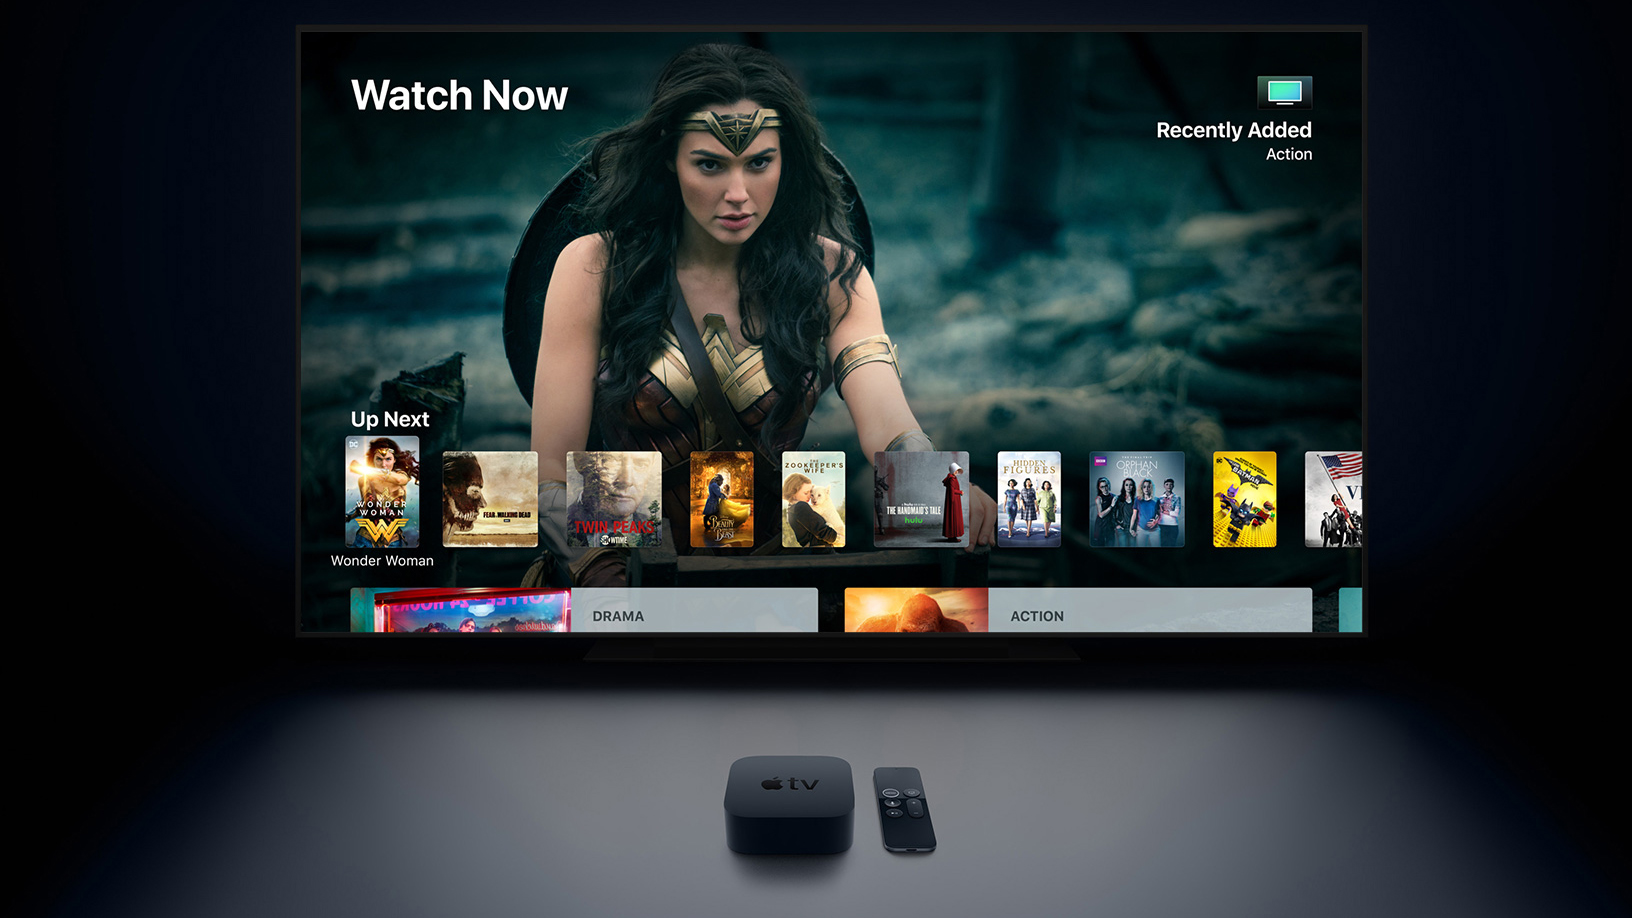 Here's why the Apple TV still has a place in a world of Smart TVs